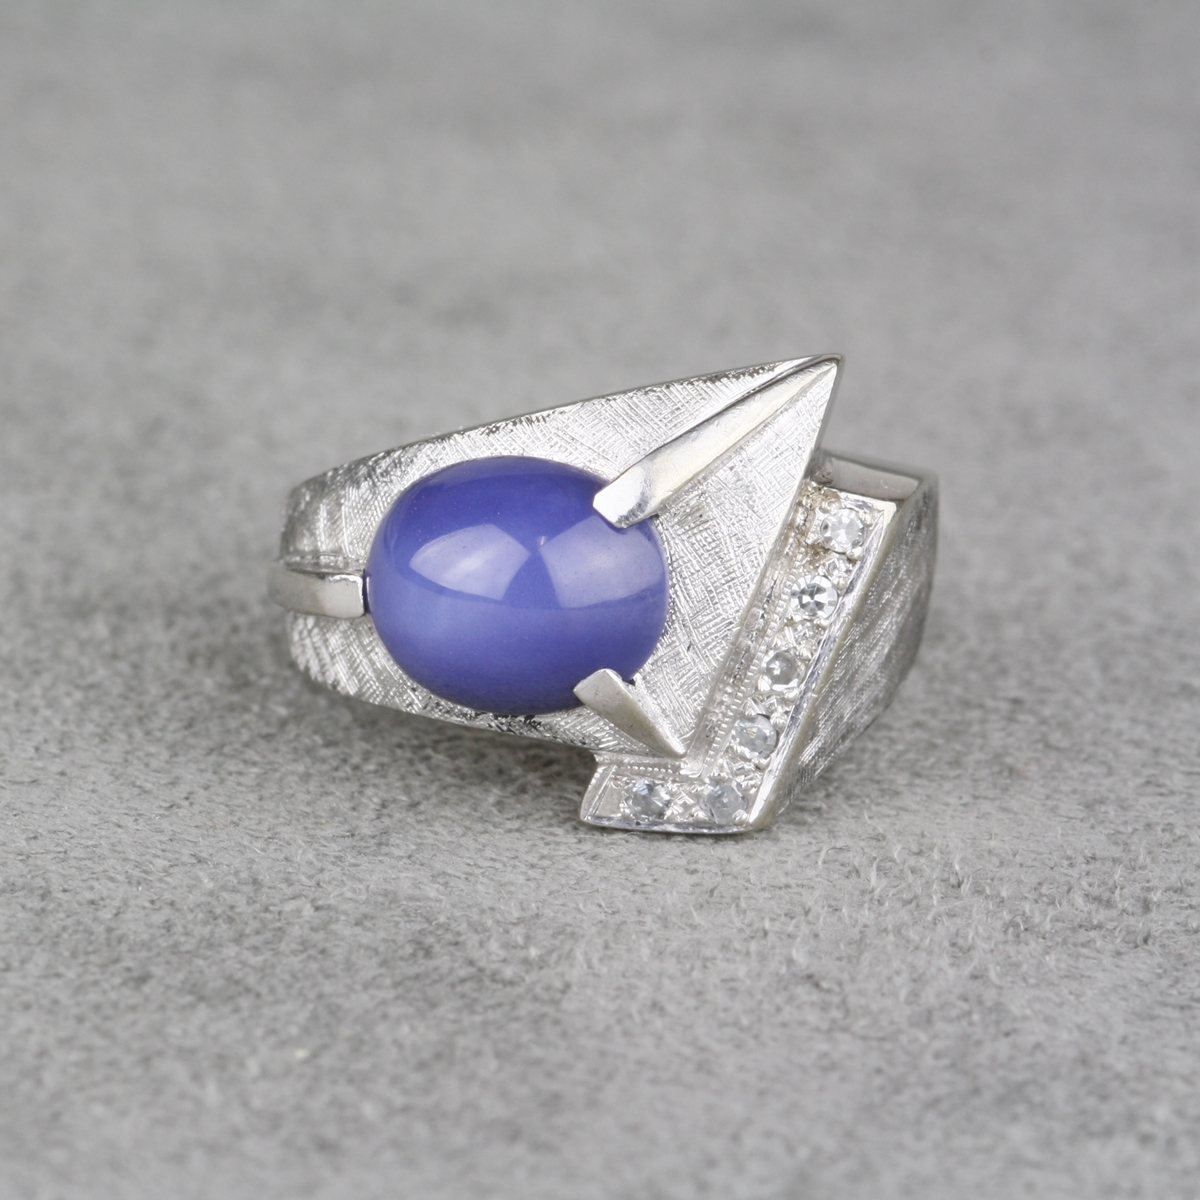 weddinginspiration ring pin by oval eidelprecious gray blue jewelry sapphire wedding engagement